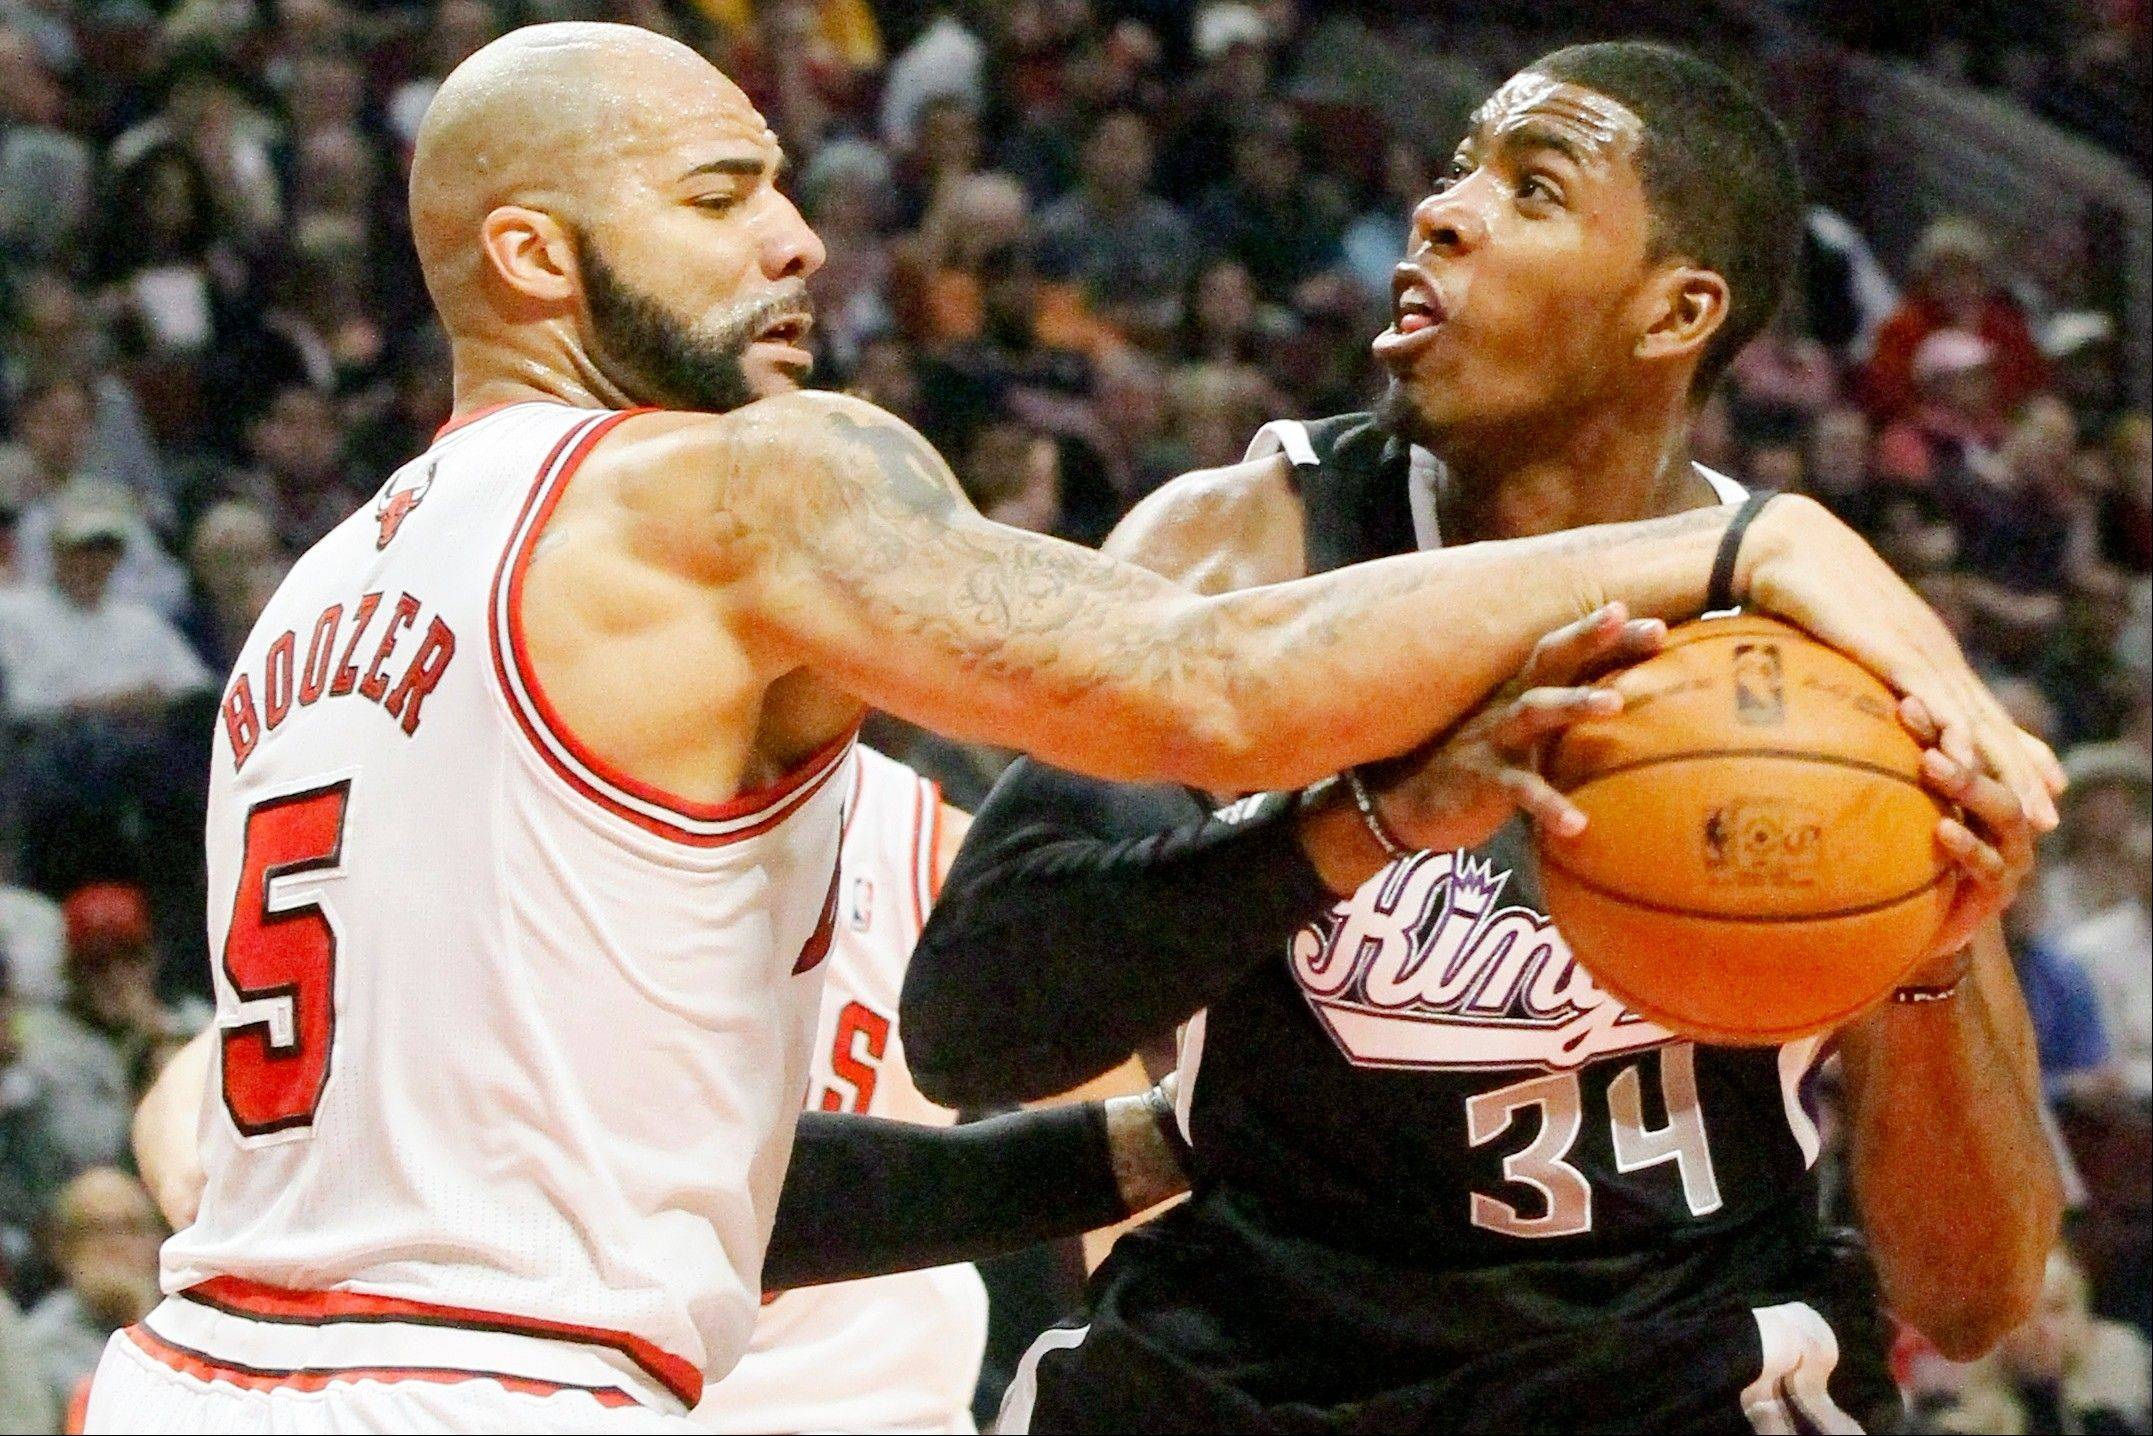 Bulls beat Kings in opening at United Center